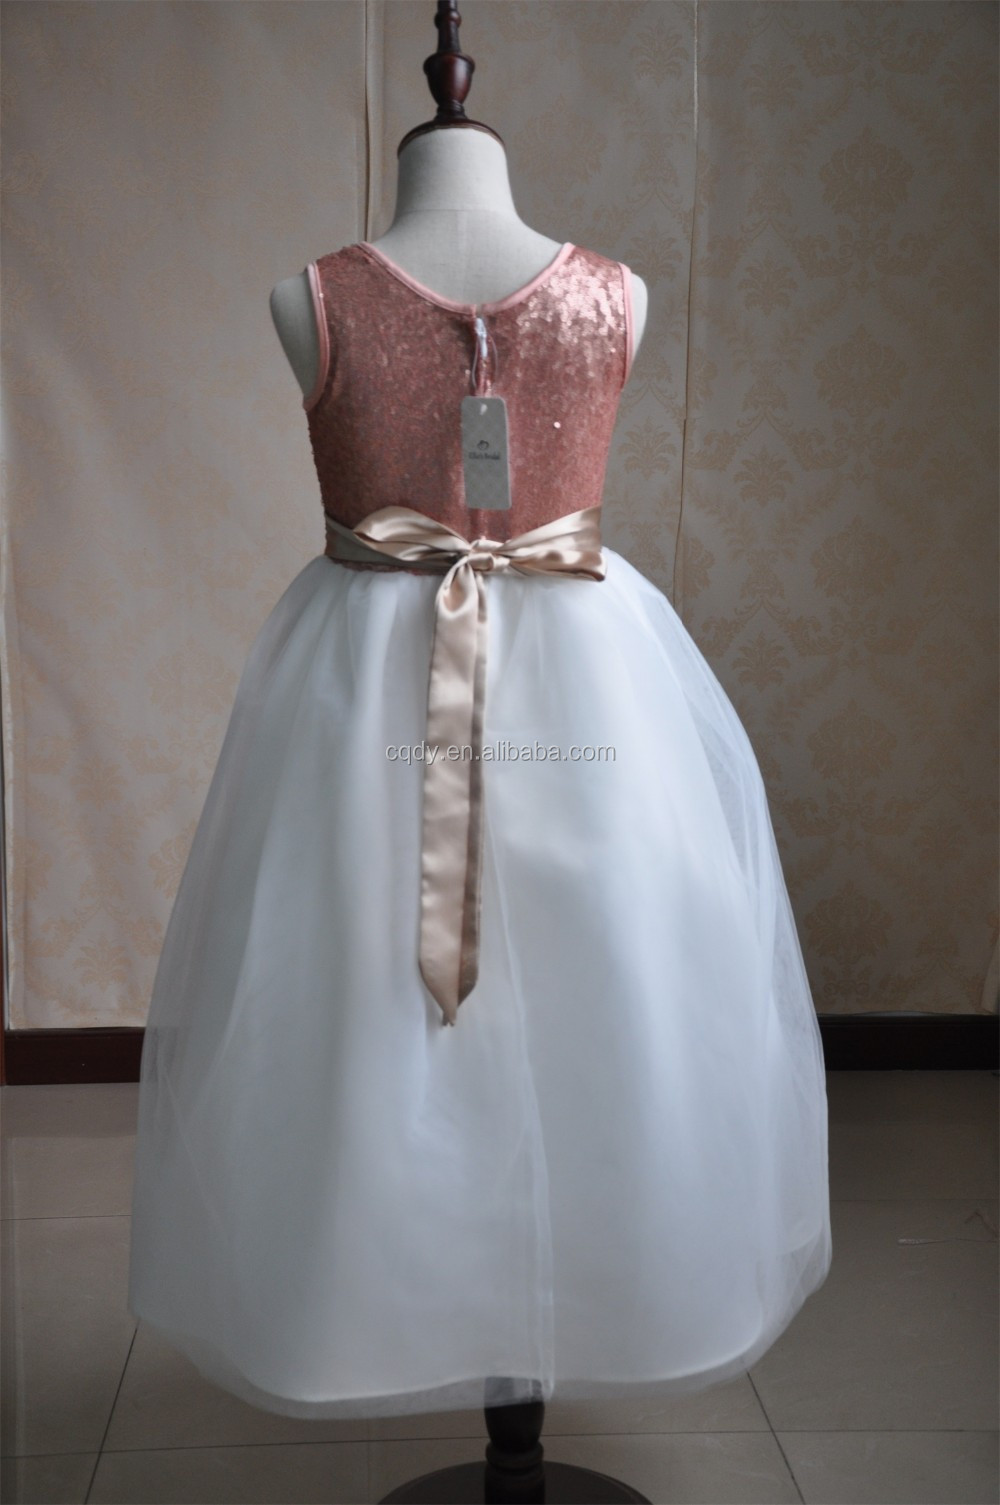 2016 New Color Pink Real Flower Girl Dresses Sequin Party